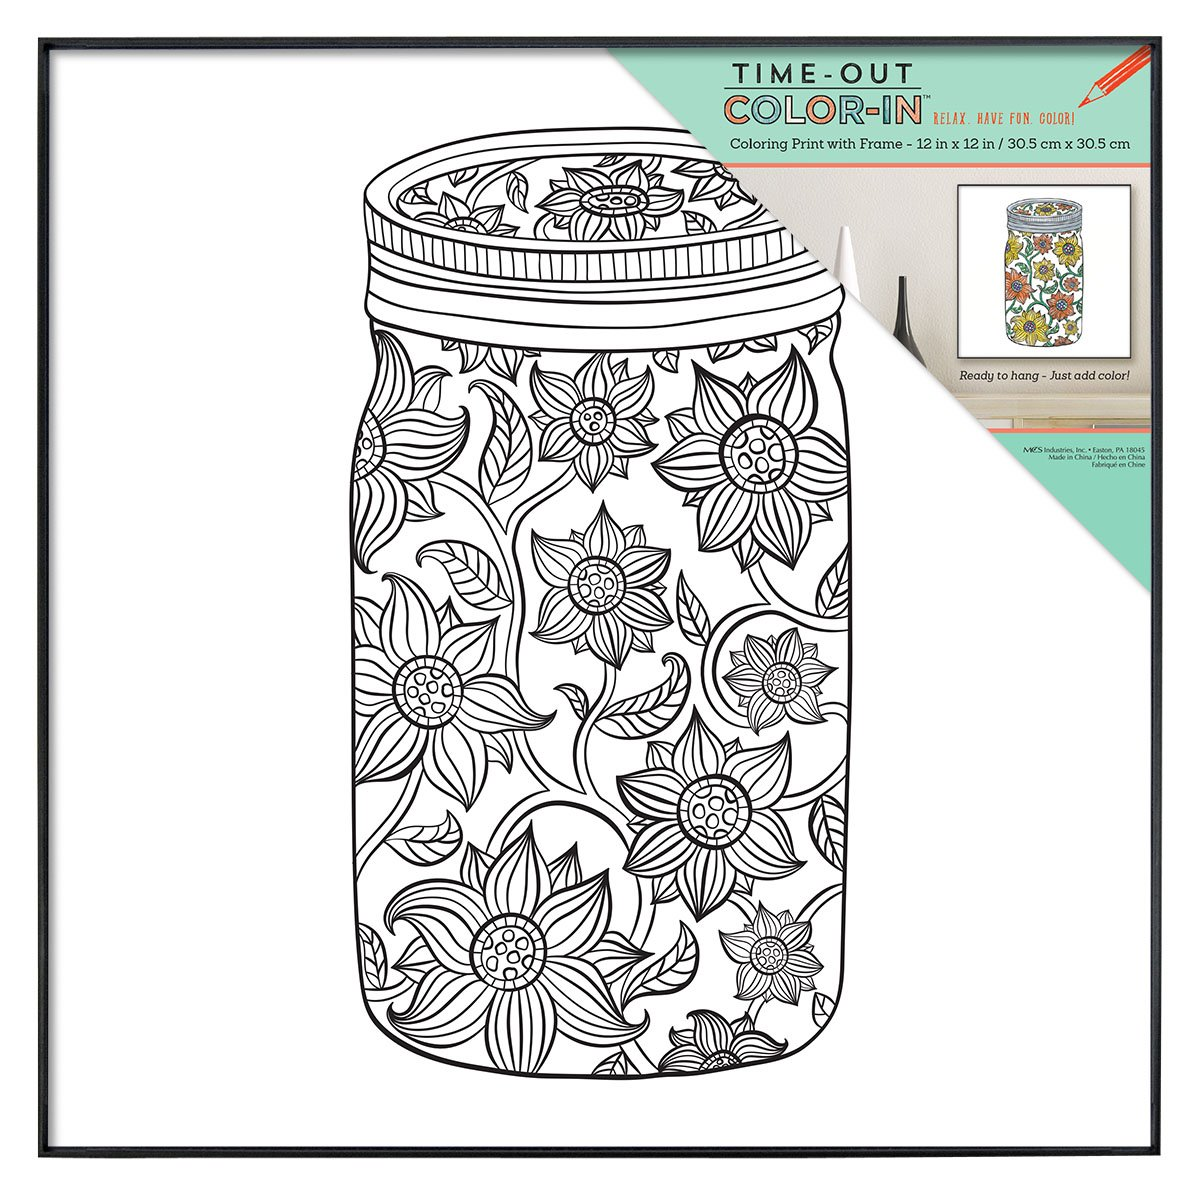 Amazon MCS Time Out Color In 12x12 Inch Framed Adult Coloring Page With Sunflower Mason Jar Design 65627 Home Kitchen